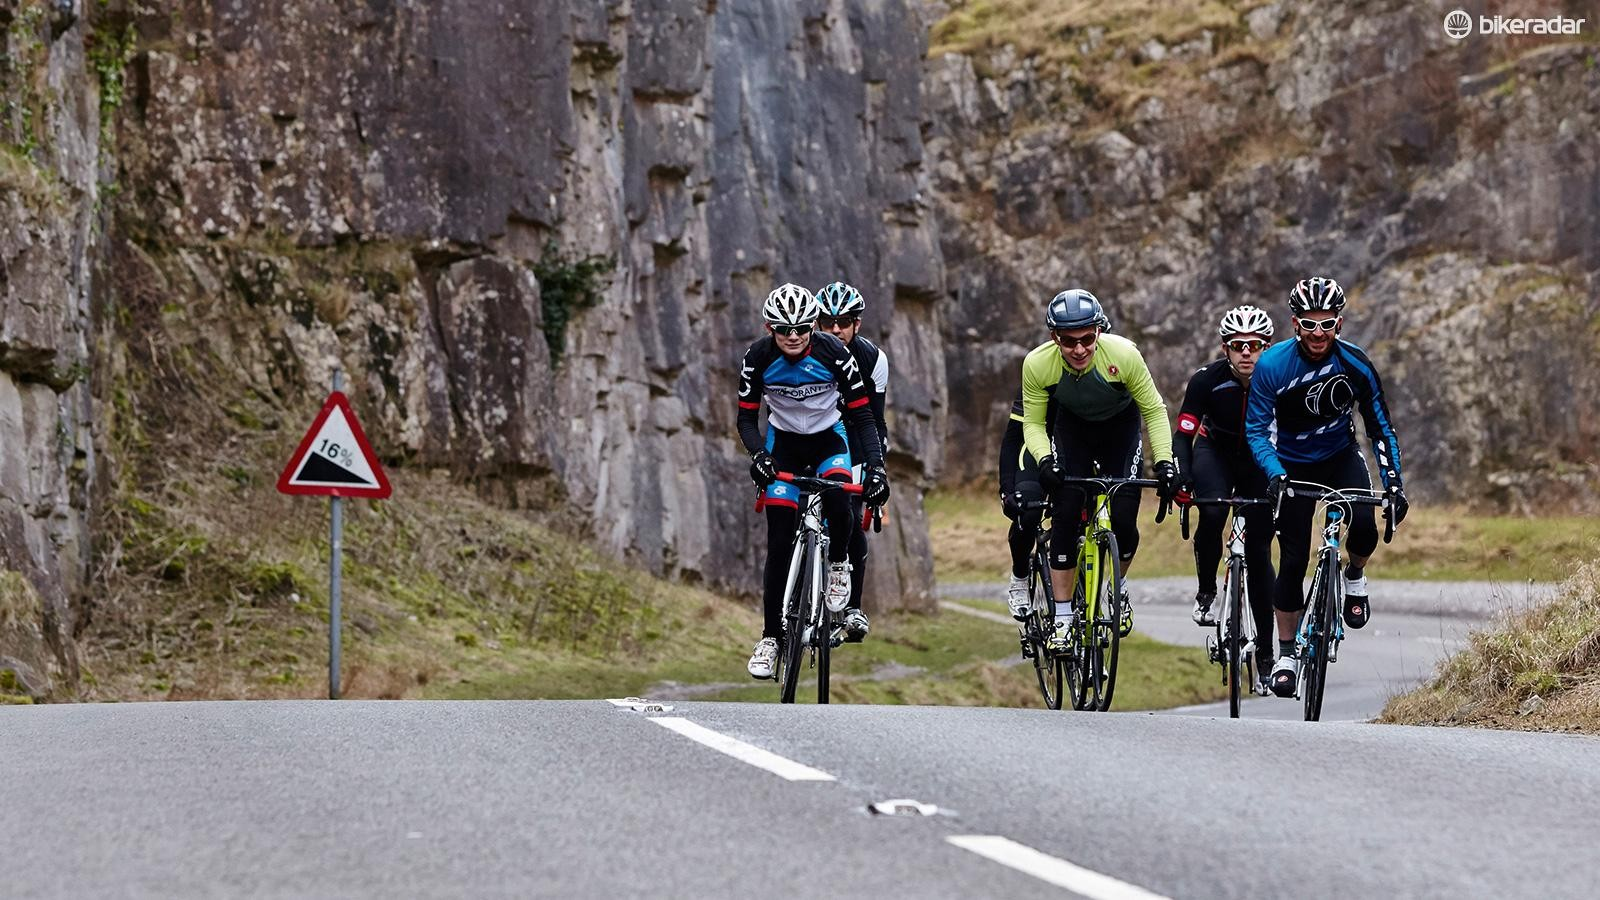 You'll go faster — even if it's only to the cake stop — if you ride in a group